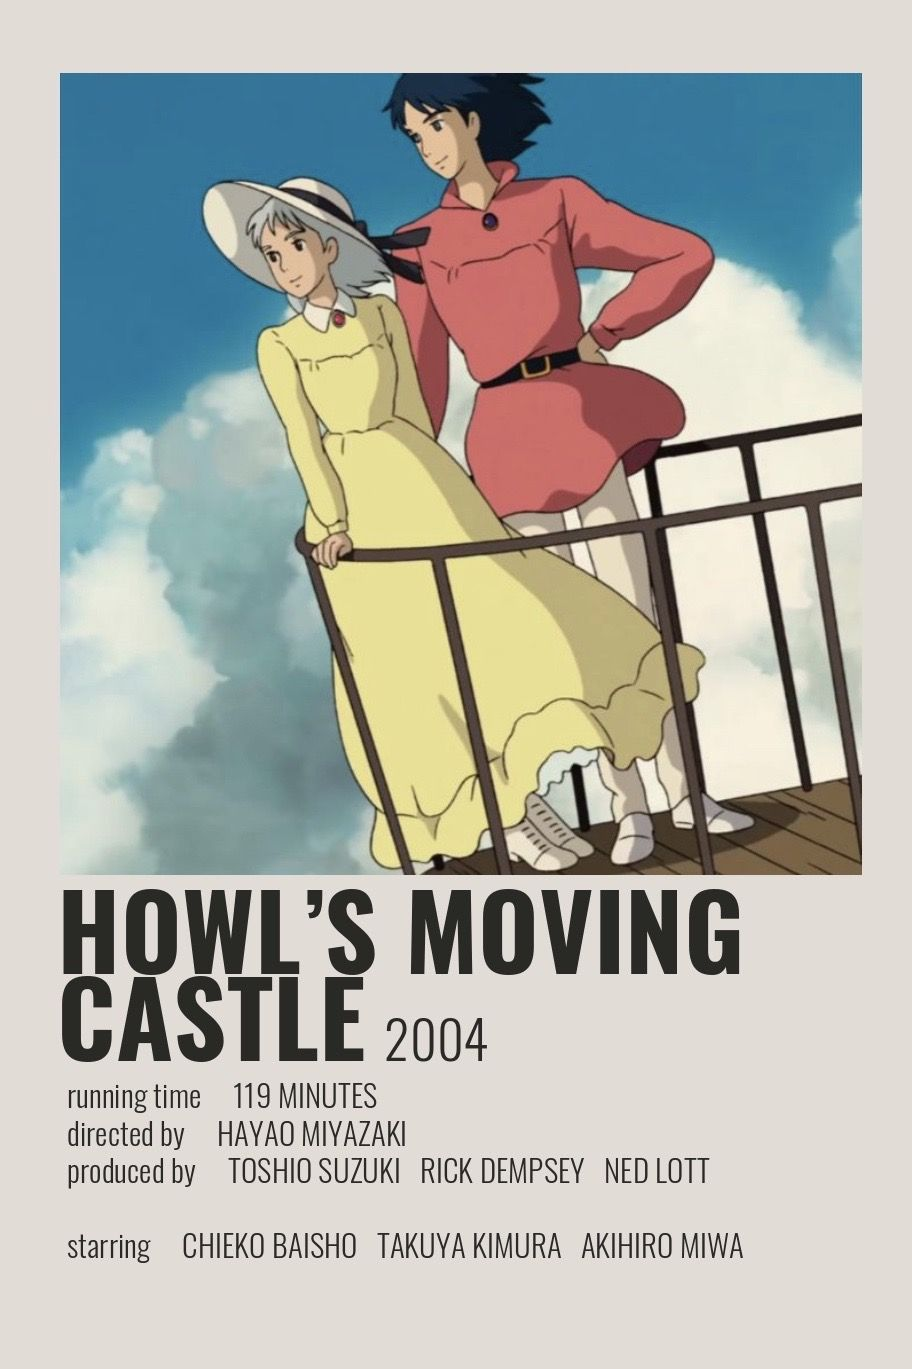 the post movie - Howl's Moving Castle Poster by Cindy - CoDesign Magazine | Daily-updated Magazine celebrating creative talent from around the world